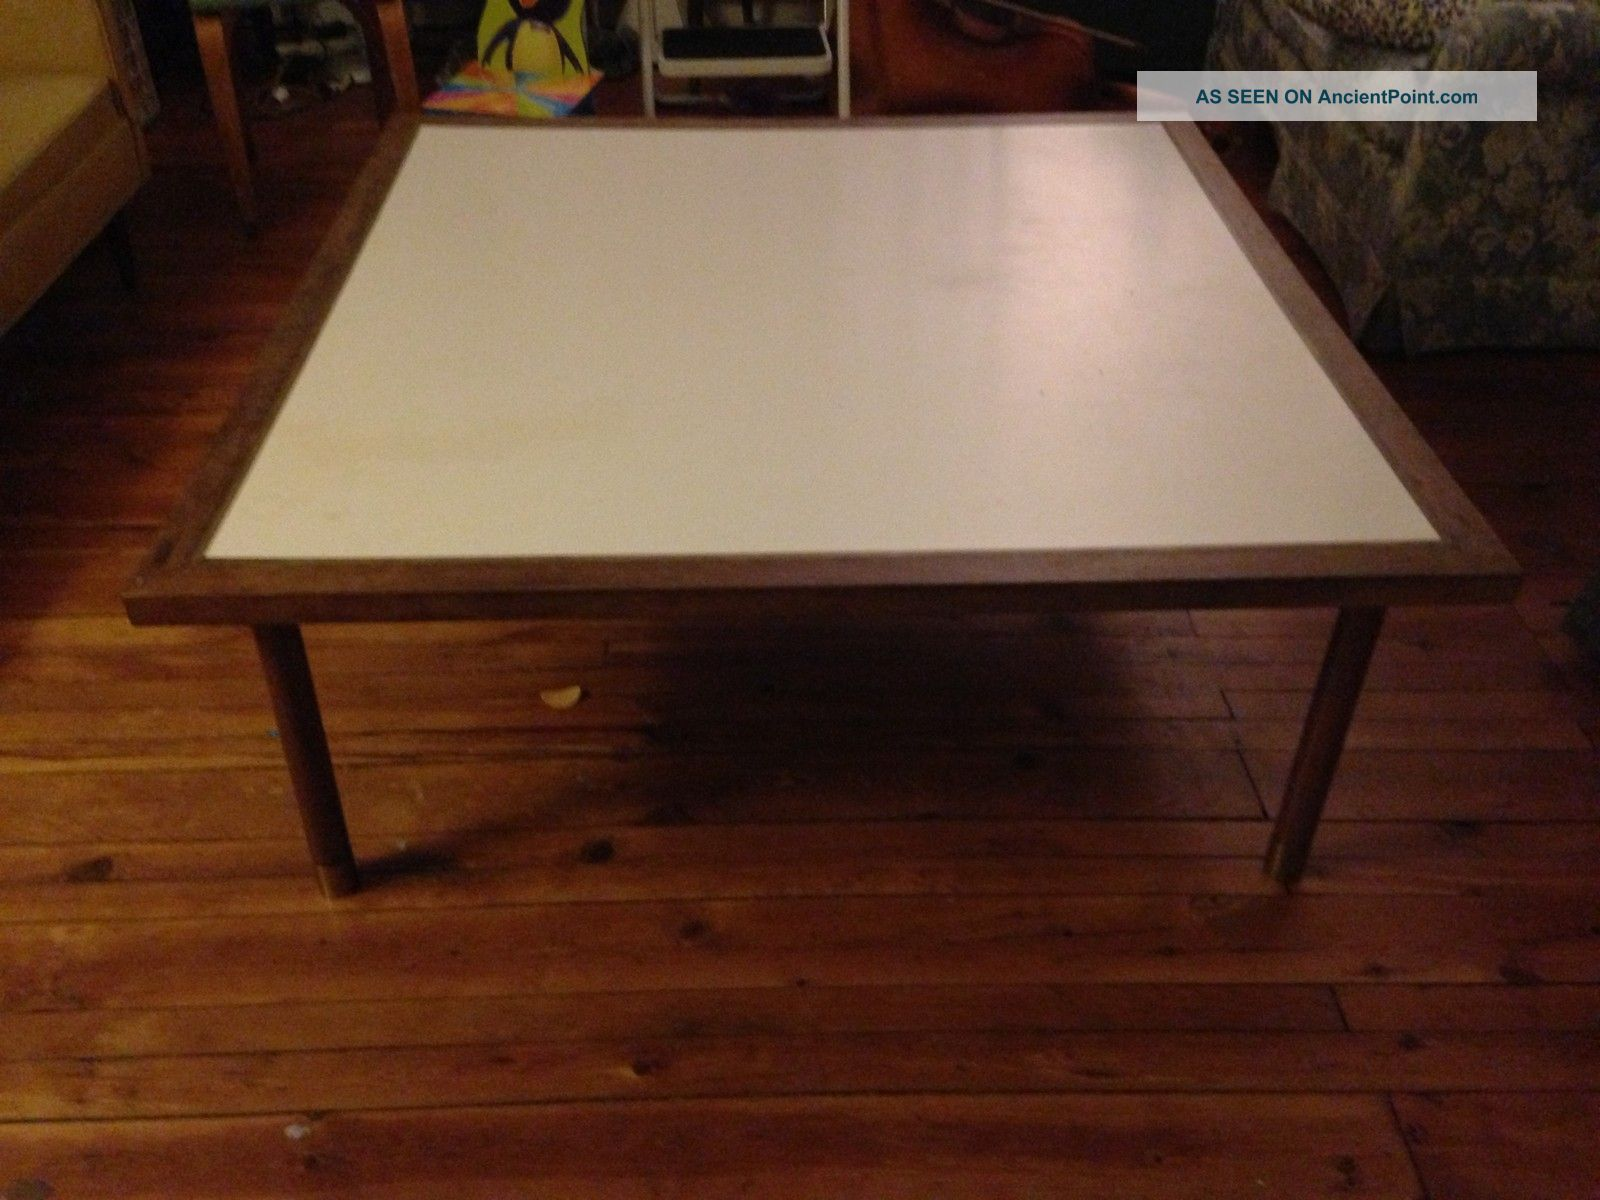 Table Top Like This White Formica With Wood Border Table Coffee Table Formica